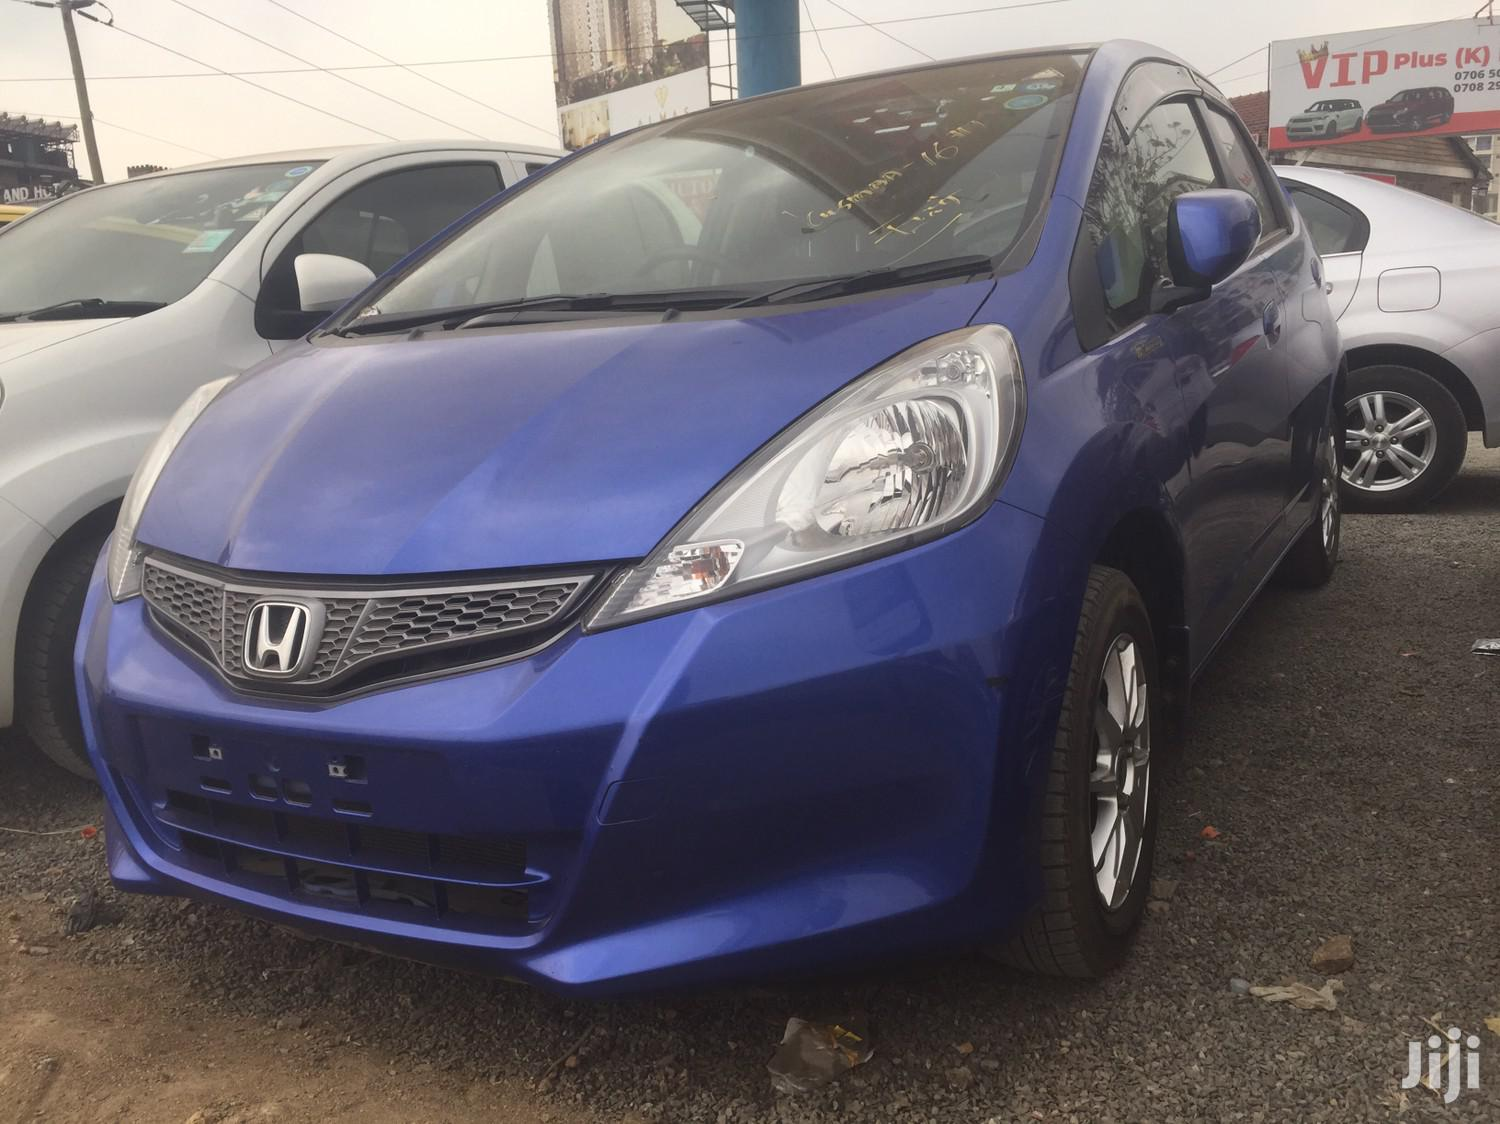 Honda Fit 2012 Automatic Blue | Cars for sale in Kilimani, Nairobi, Kenya